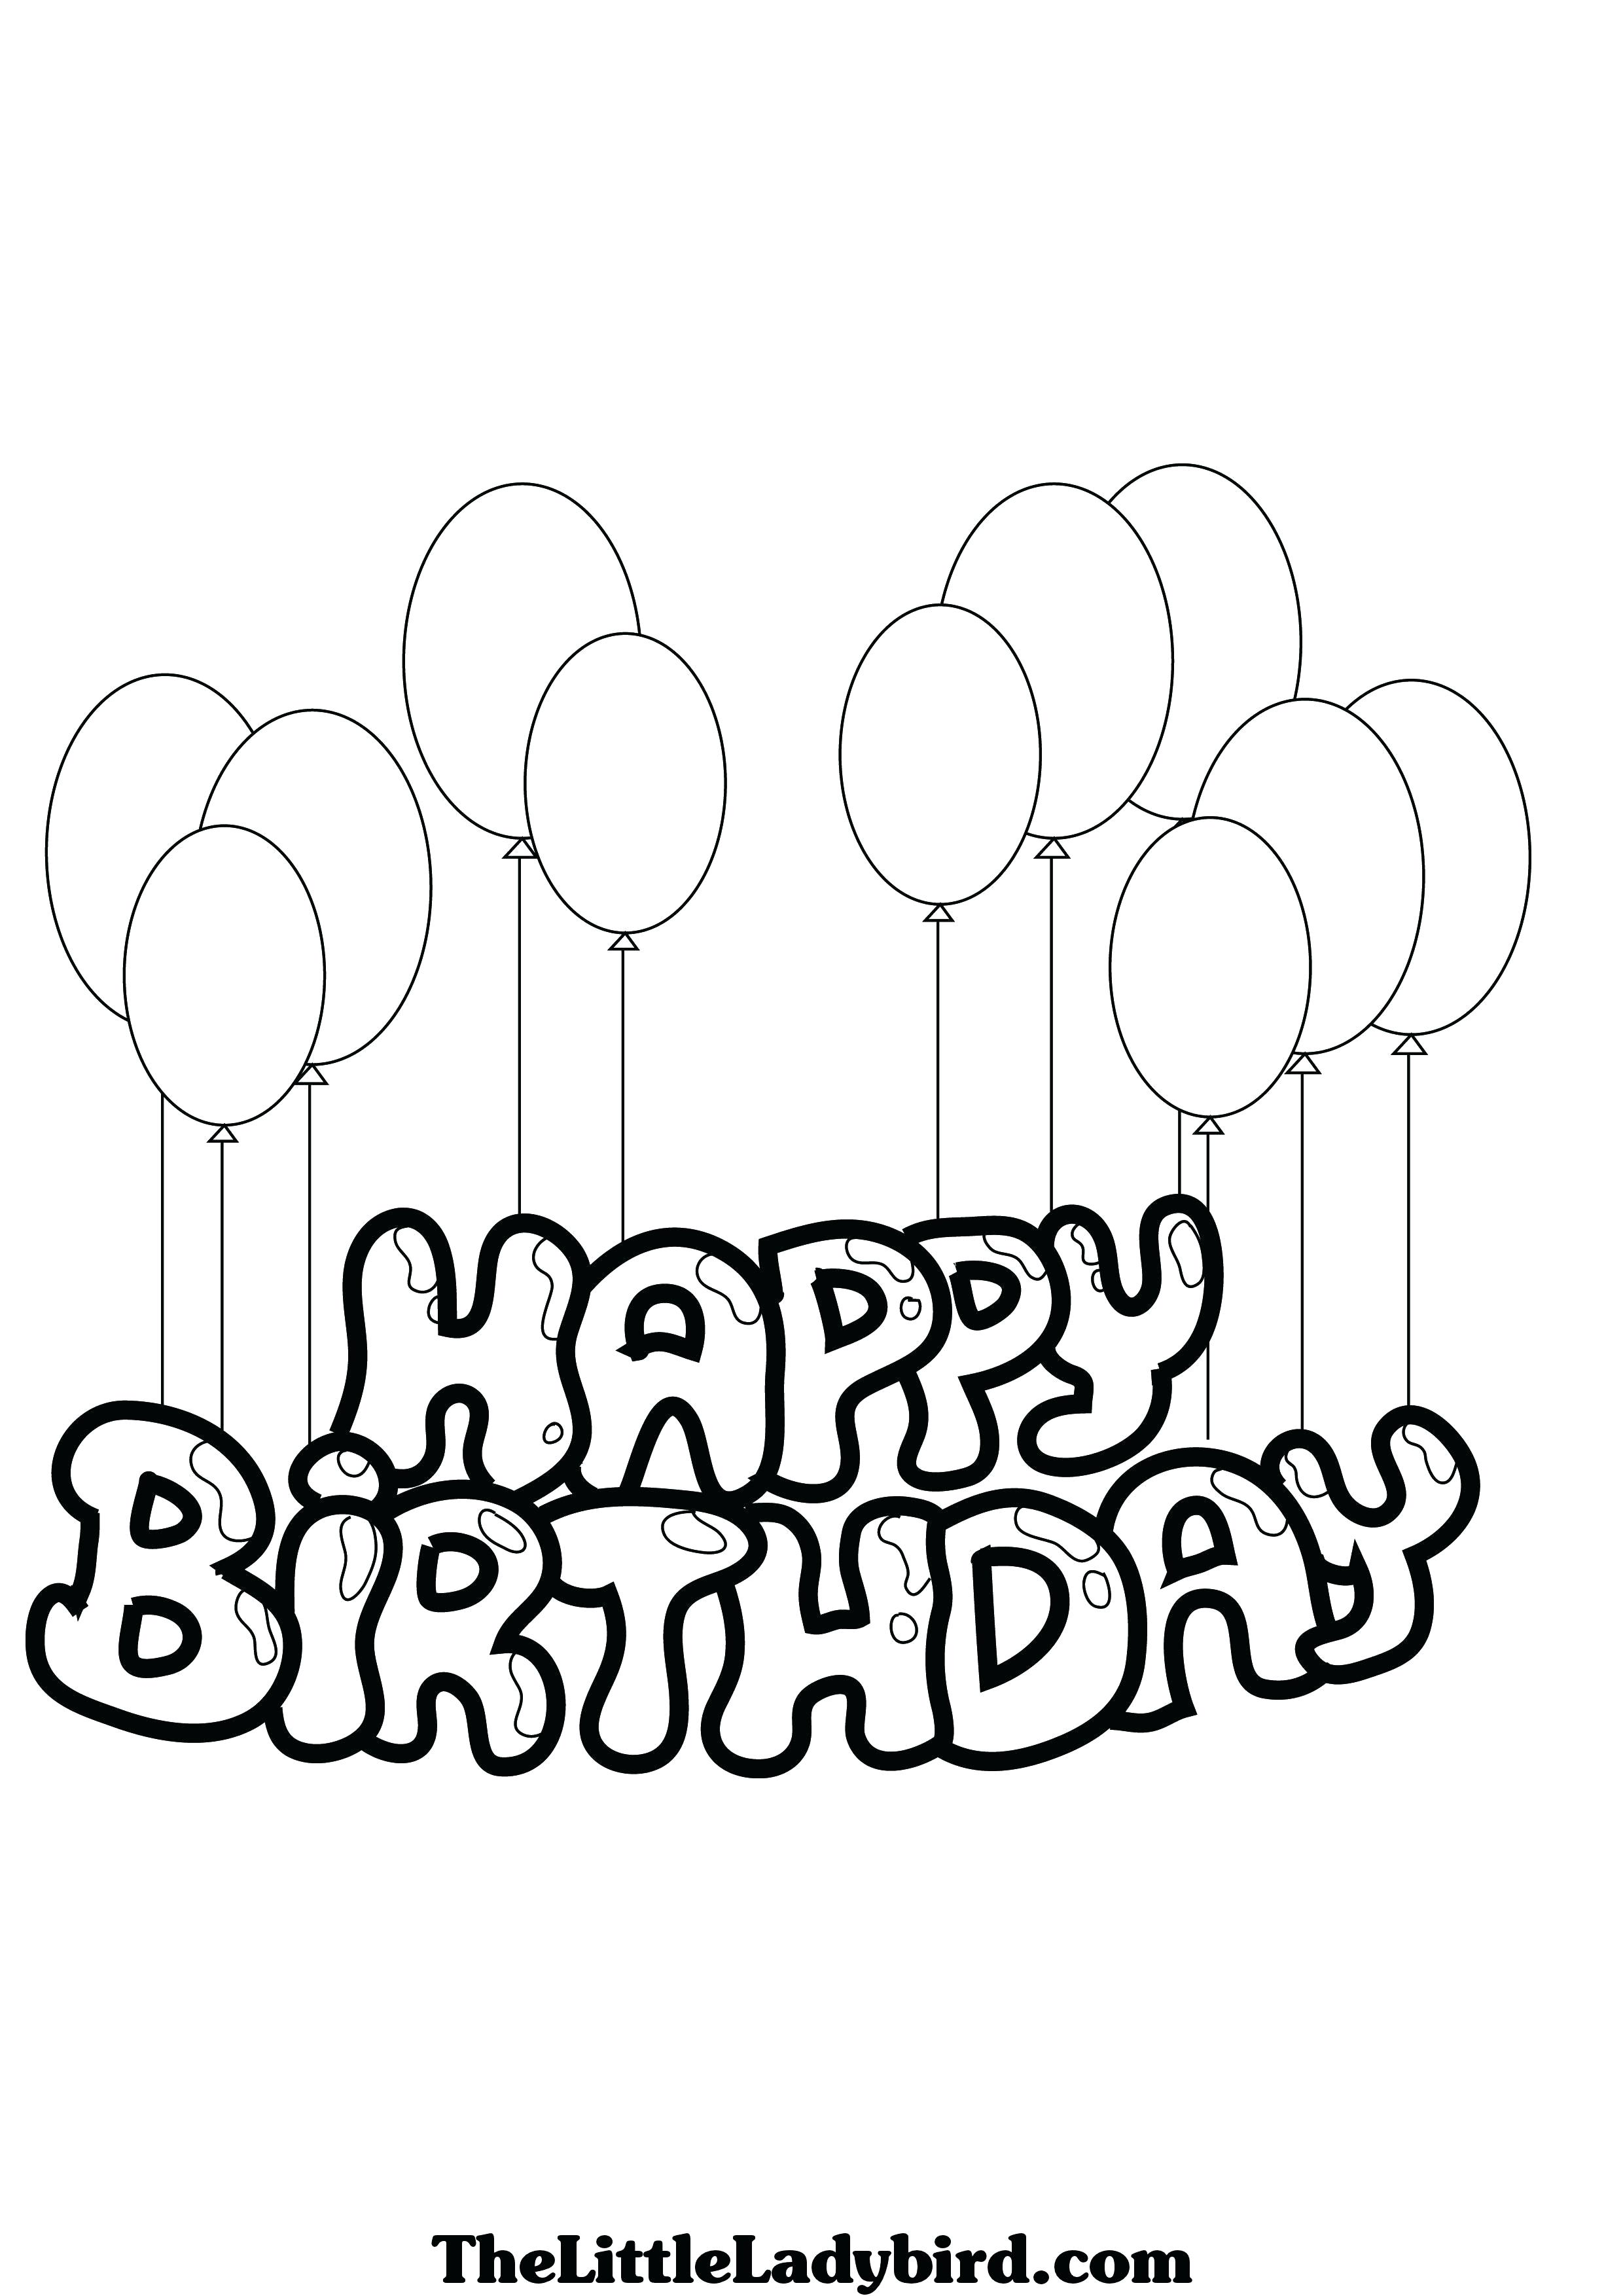 happy birthday sign printable ; happy-birthday-sign-printable-black-and-white-breathtaking-outline-coloring-card-net-images-stickers-font-banner-cake